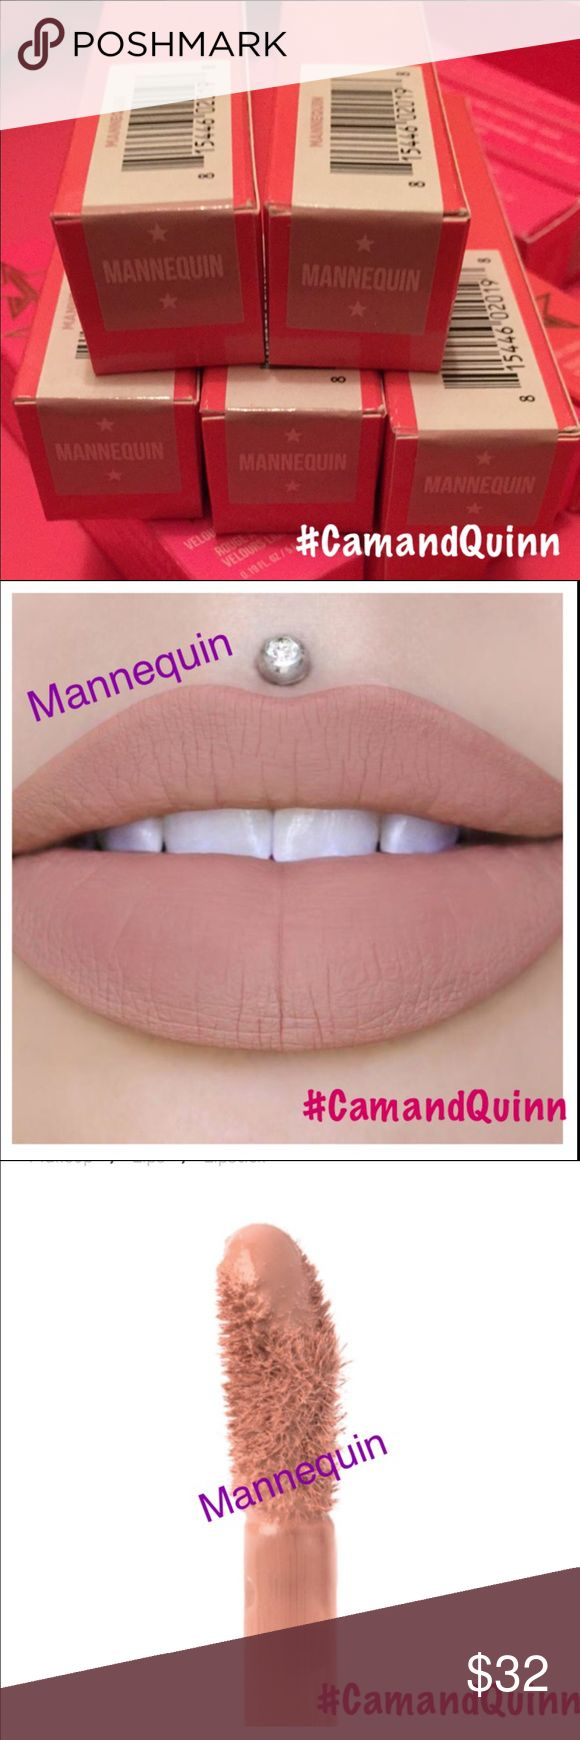 Jeffree Star⭐️Mannequin⭐️Trusted Seller BNIB, NEVER opened Jeffree Star MANNEQUIN Velour Liquid Lipstick for sale. THIS IS FOR ONE LIPSTICK!! ⭐Retails @ JSC: $18 + $6s/h = $24 +OUR $1 fee =$25 @Ⓜ️!!! Have to charge more here. ⭐️If bought BEFORE 2pm Mon-Fri, GUARANTEED to be mailed out SAME day. ⭐️We give a 10% off card to all clients valid 2 months off a future purchase! ⭐⭐️⭐️️We only charge $25 + s/h ($4)@Ⓜ️! Come see us over there for a cheaper deal⭐️⭐️⭐️ Jeffree Star Makeup Lipstick